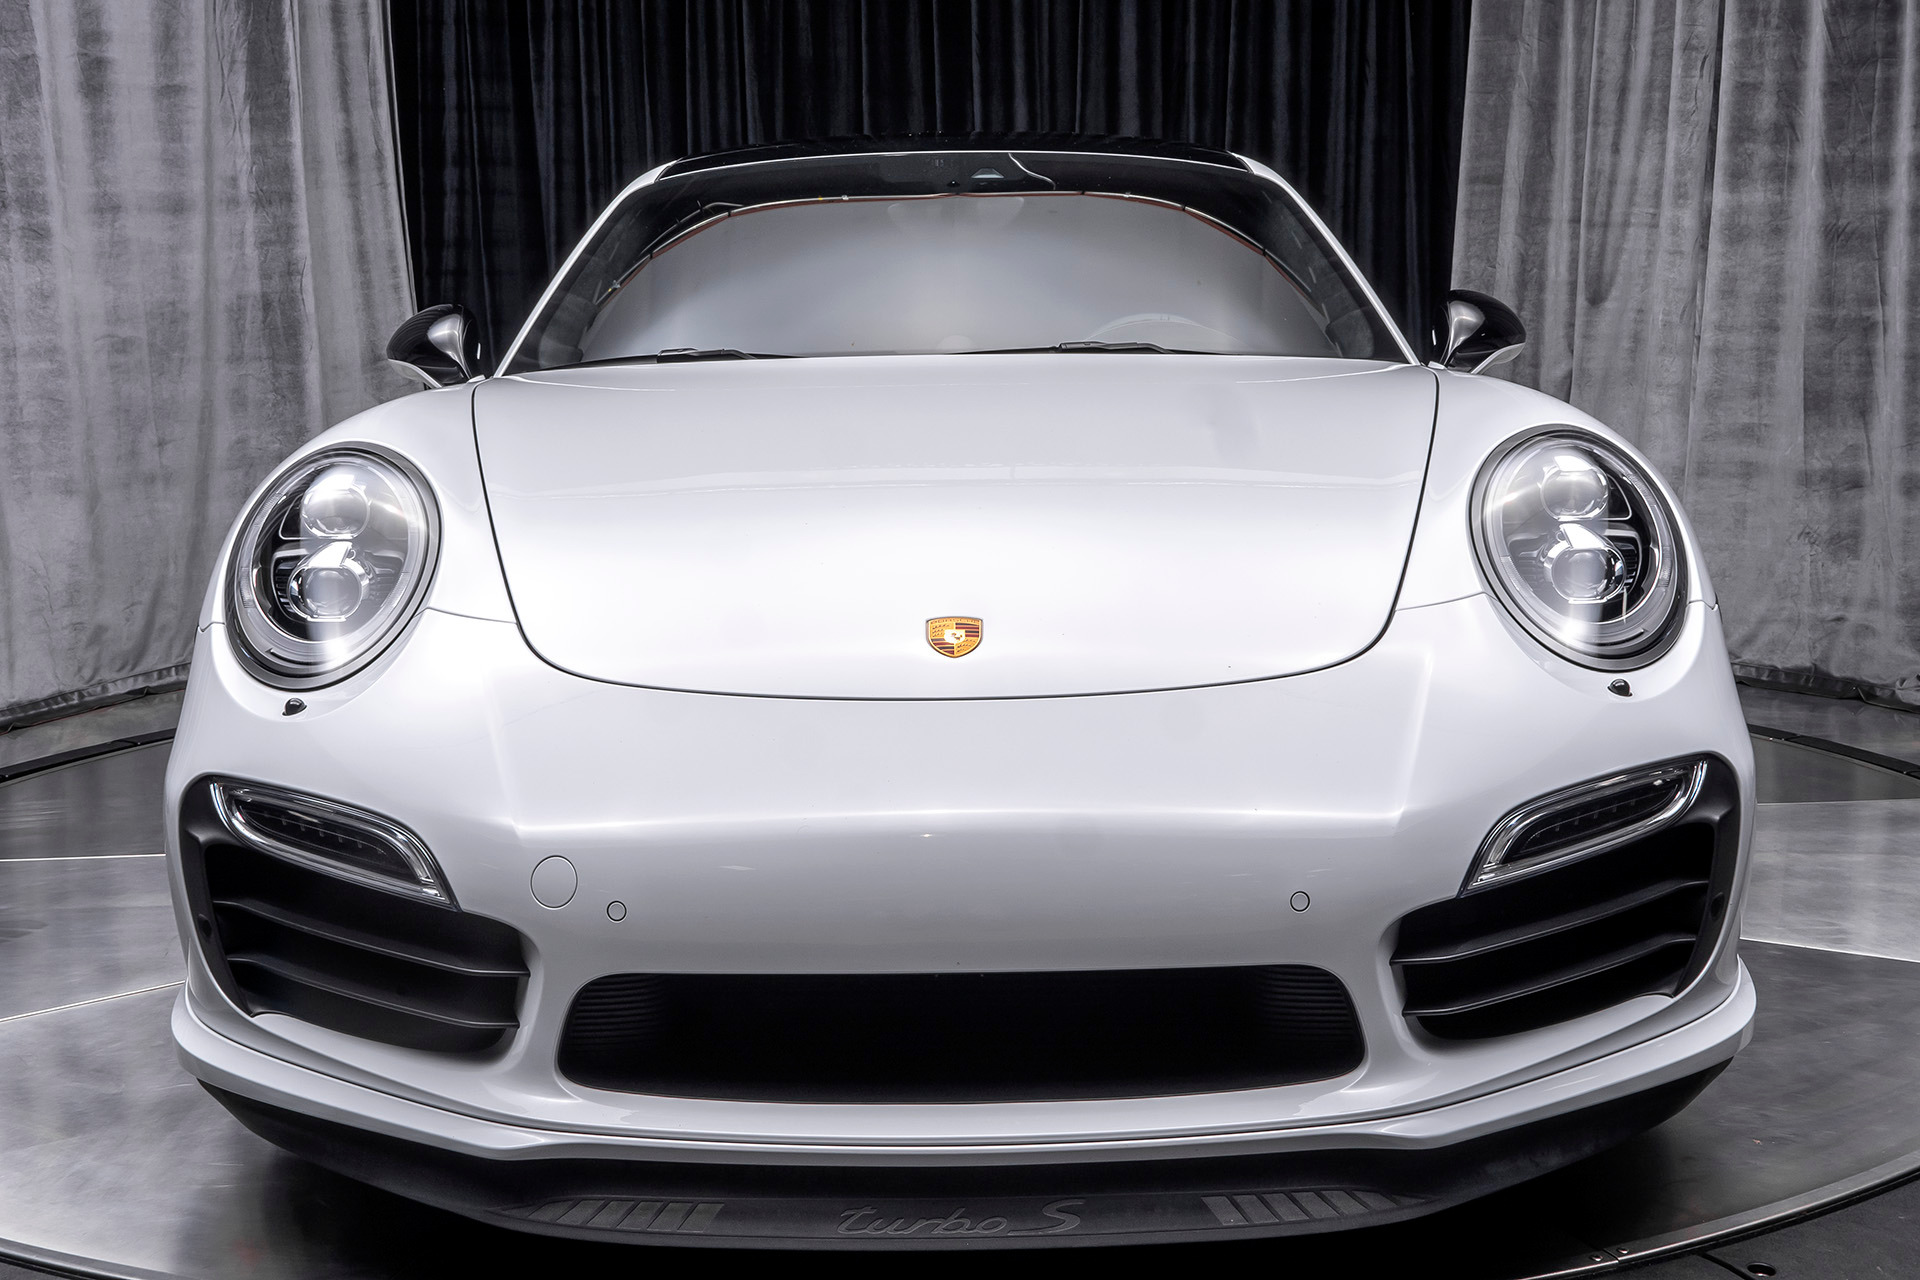 Used-2015-Porsche-911-Turbo-S-Coupe-LOADED-WITH-UPGRADES